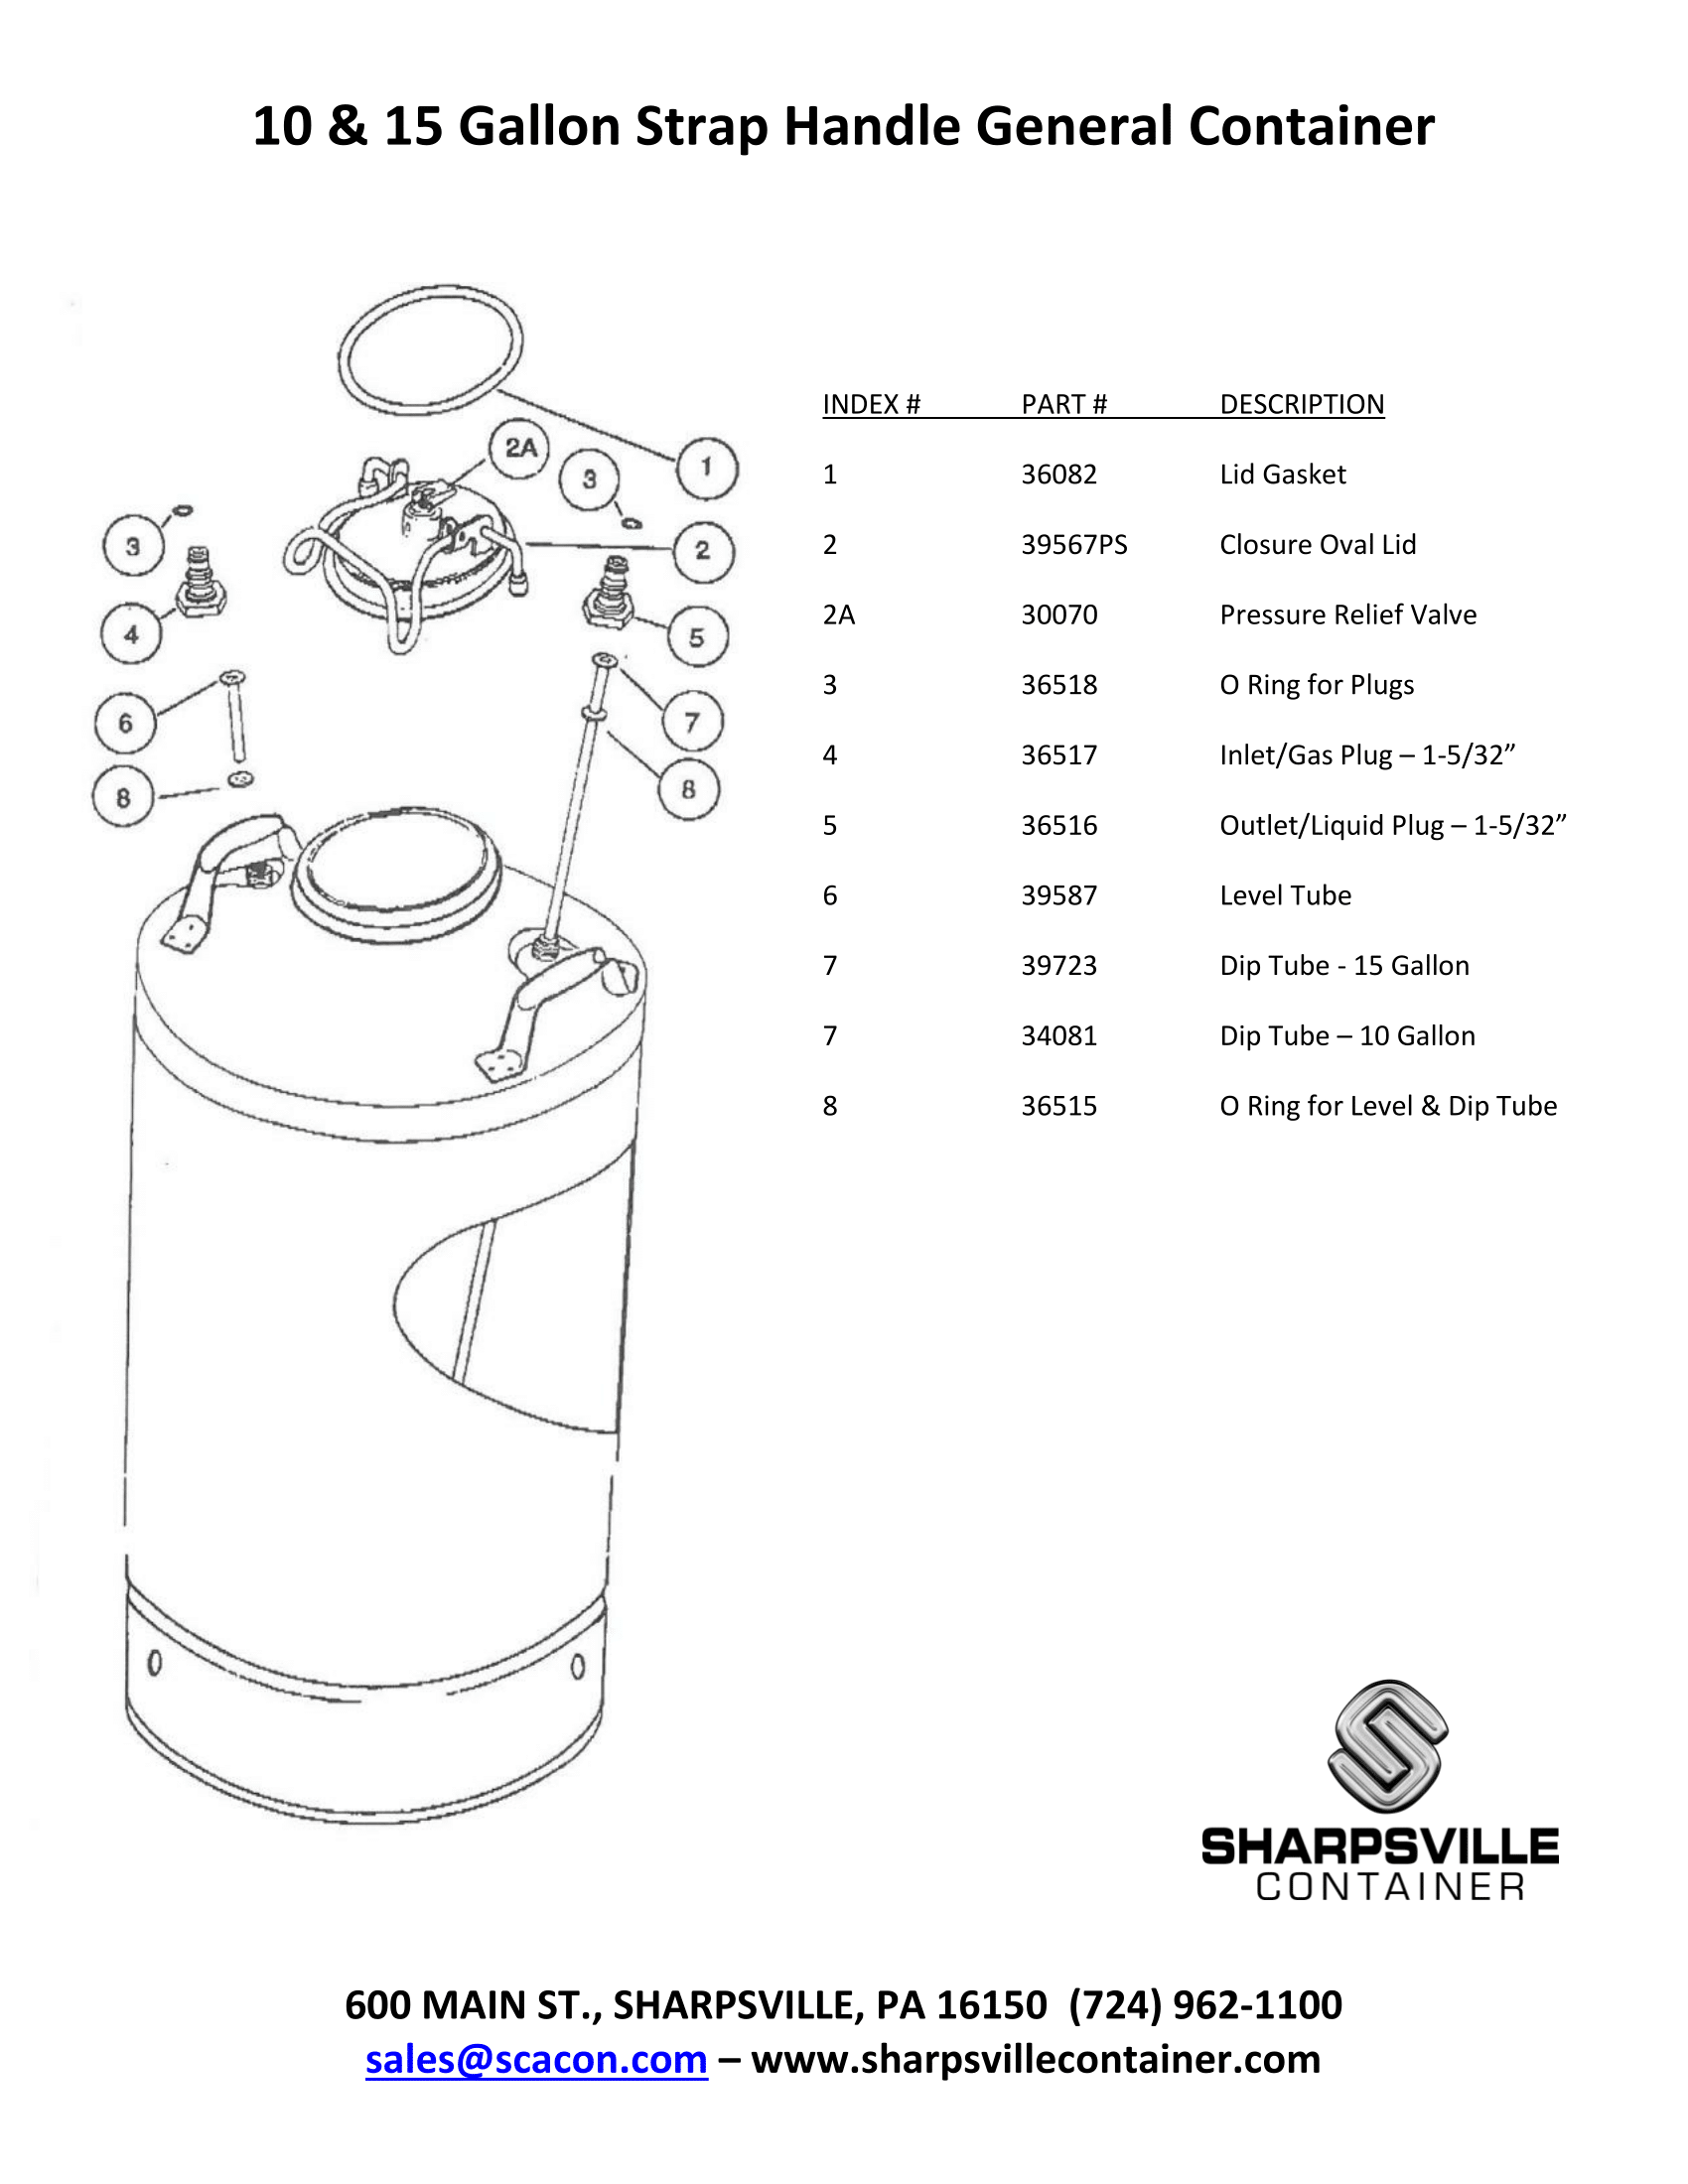 General Container Diagram